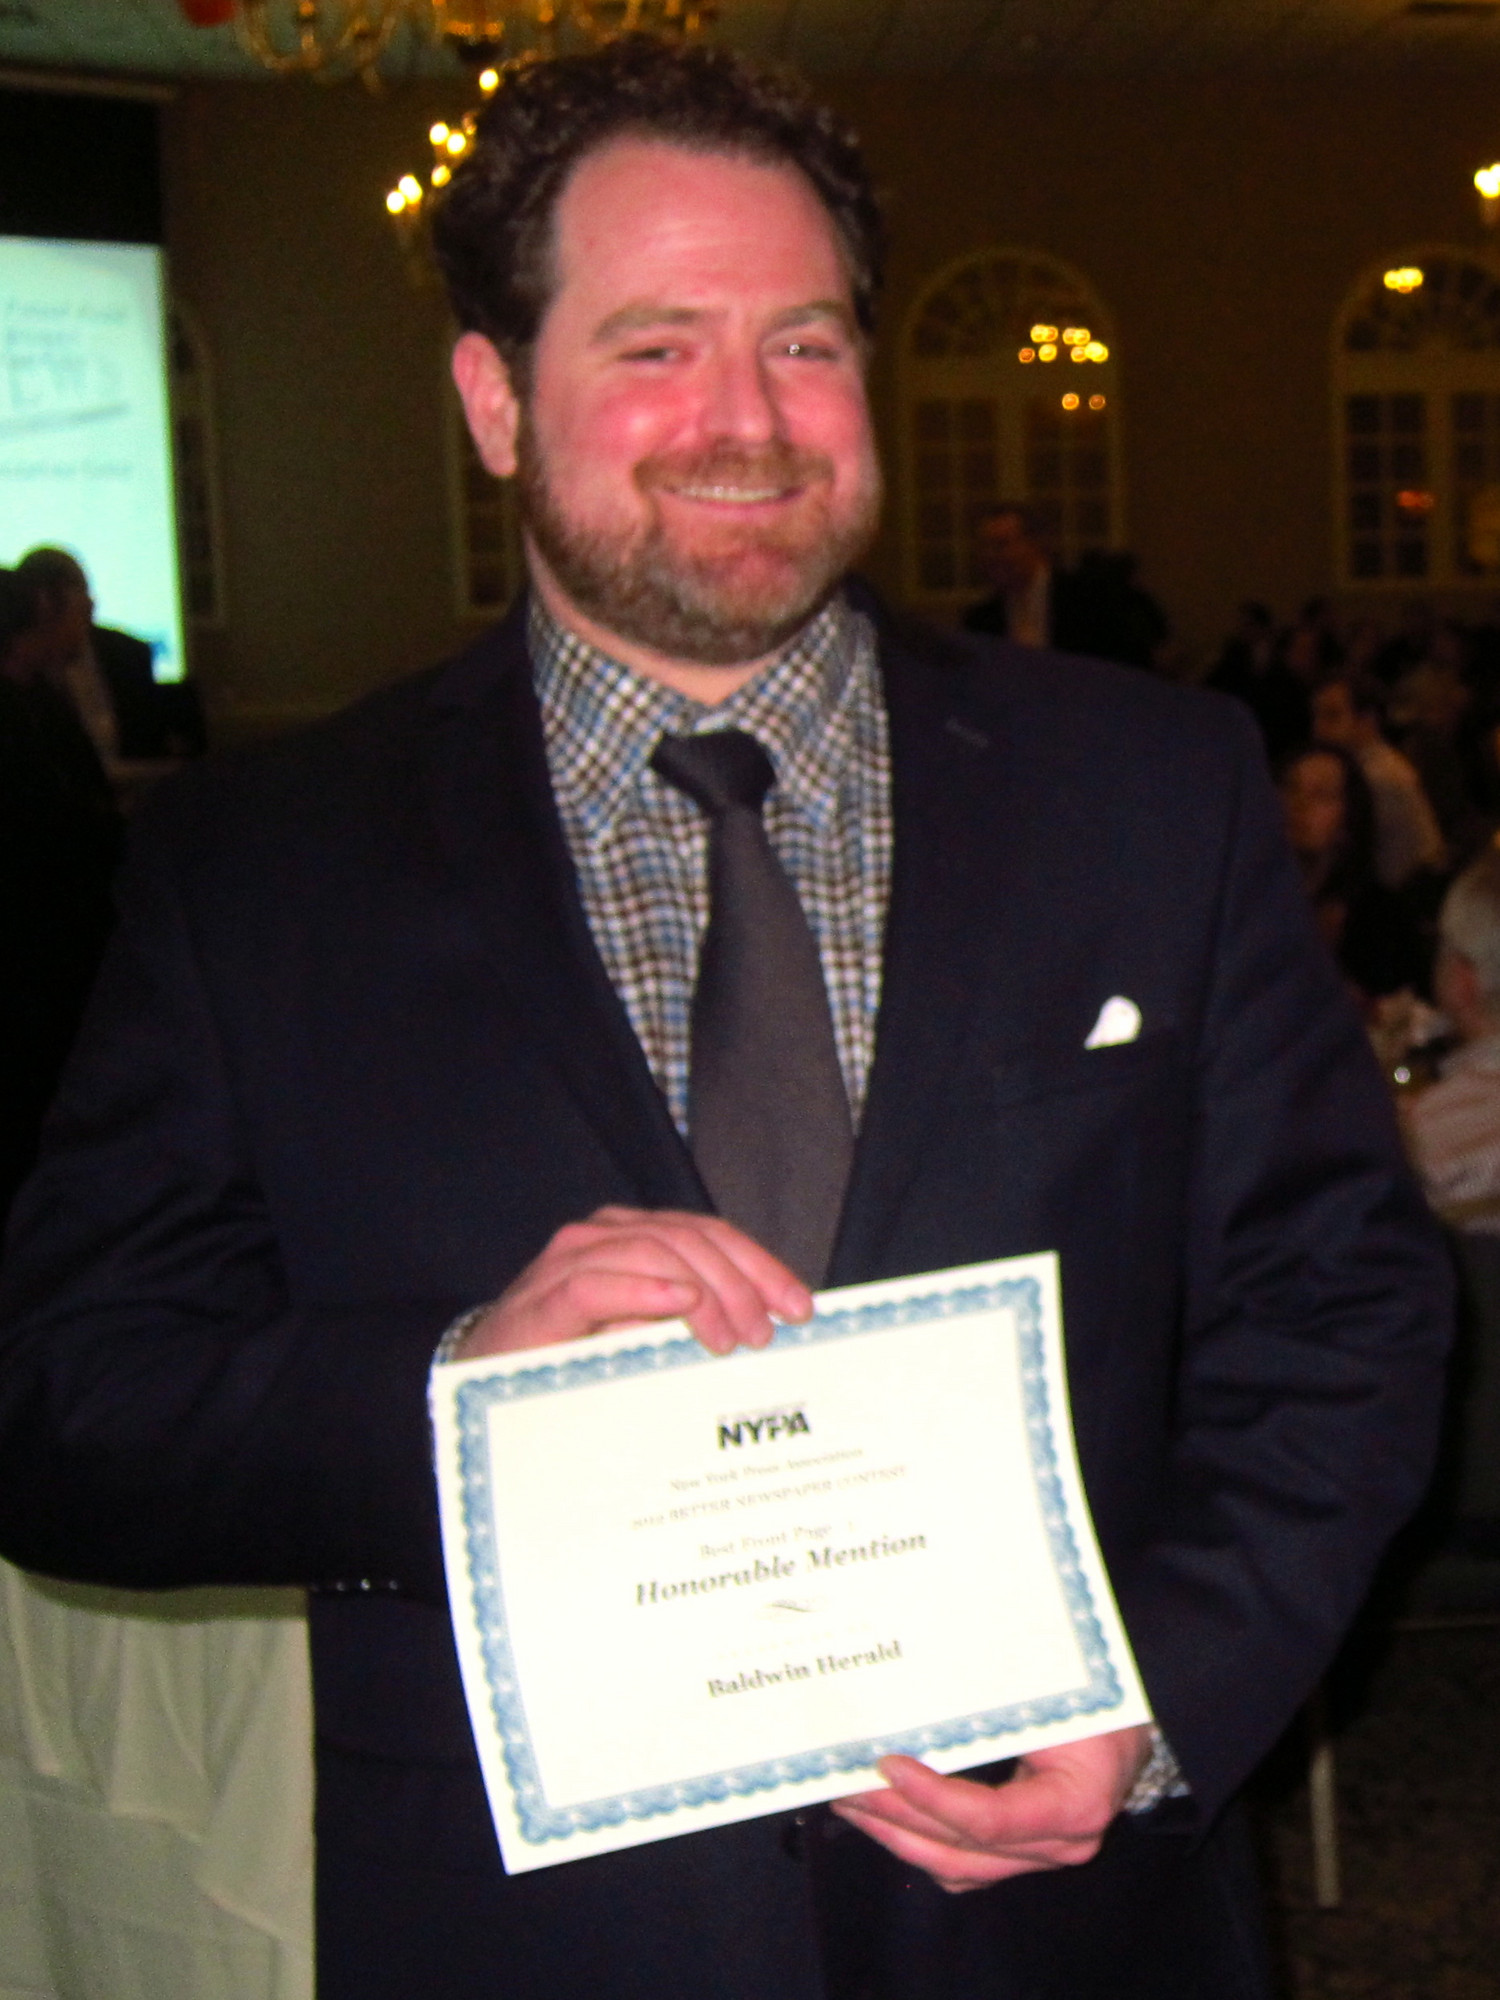 Chris Connolly, editor of the Baldwin Herald, was one of many Herald editors, reporters, photographers and design staffers who won awards at the New York Press Association Better Newspaper Contest.